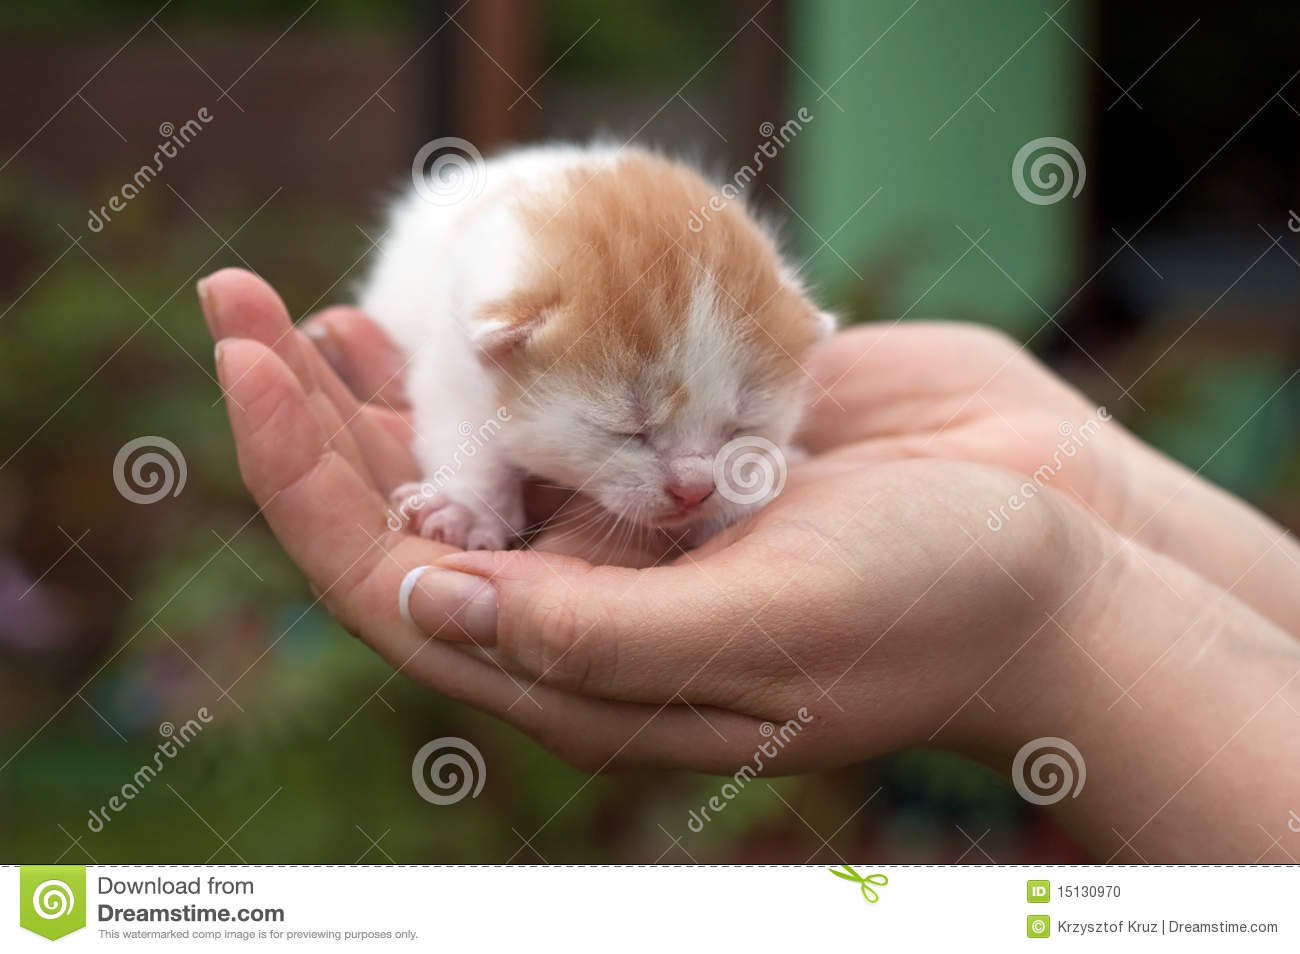 Cute Cats Stock Photo - Image: 15130970